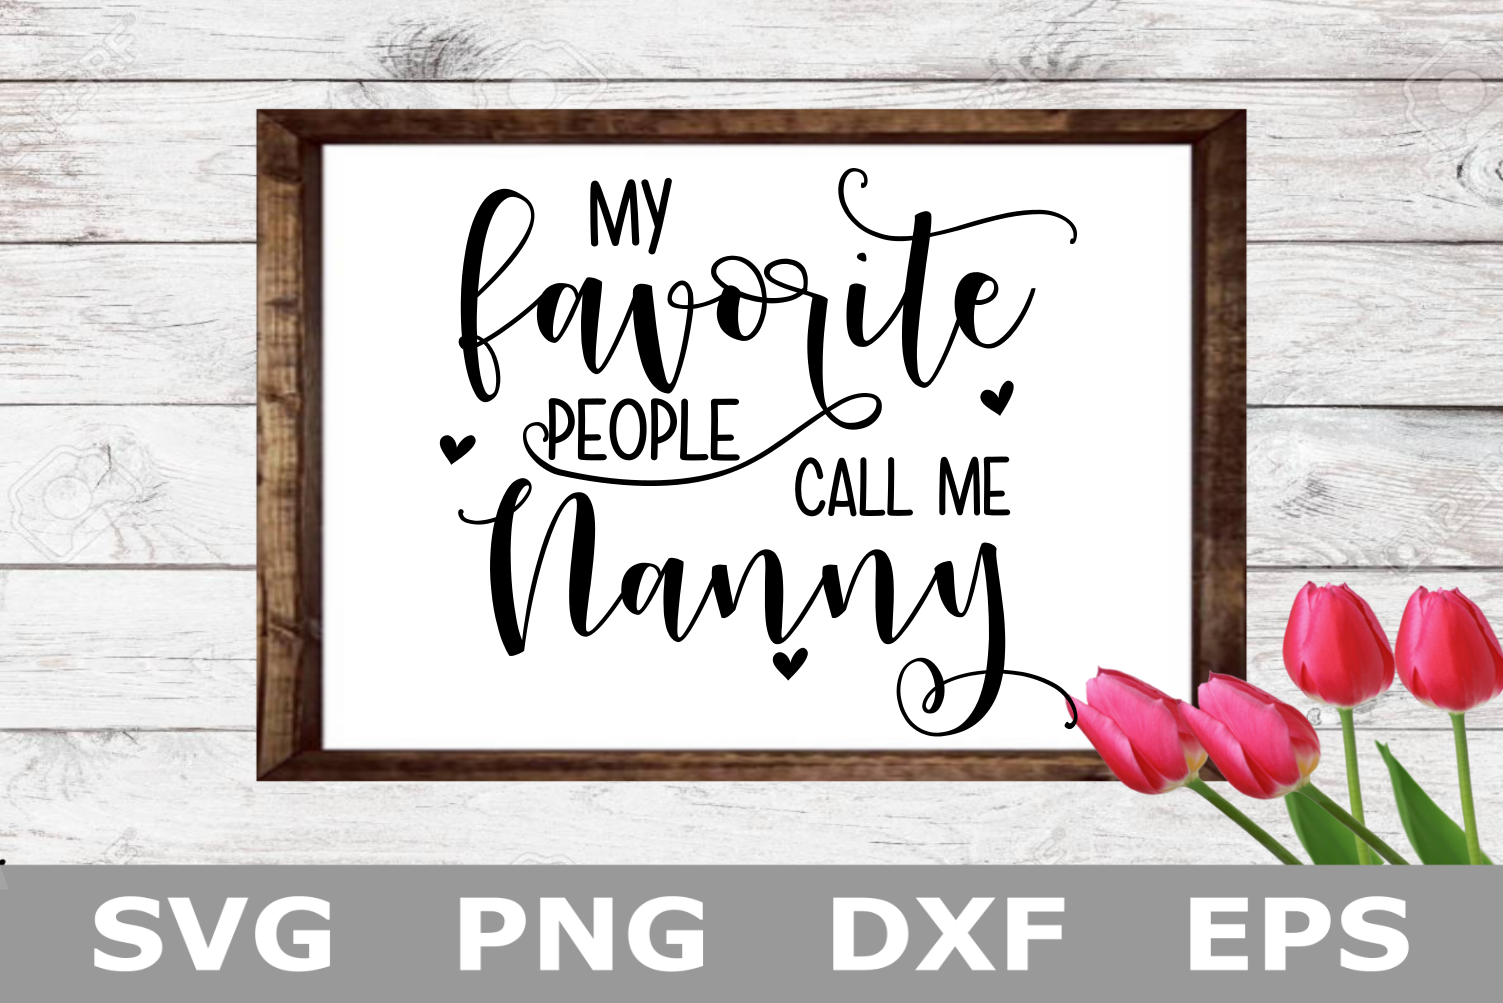 My Favorite People Call Me Nanny - A family SVG Cut File example image 2